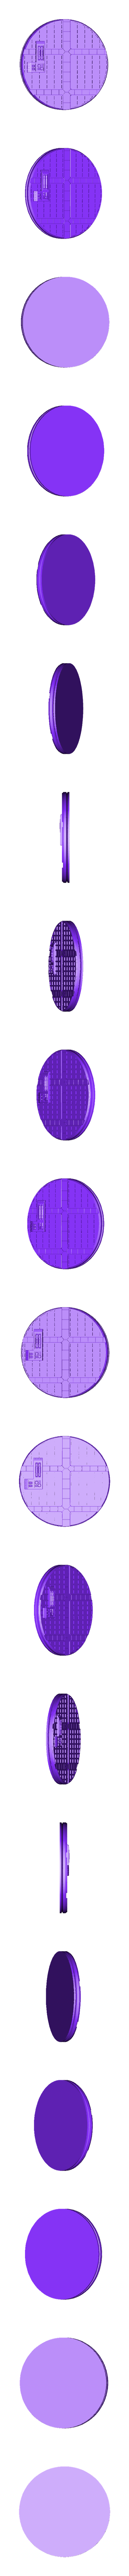 """Grid_-_2_inch_-_A.stl Download free STL file 1"""" & 2' Round Bases - The Ignis Quadrant • 3D printing template, ec3d"""